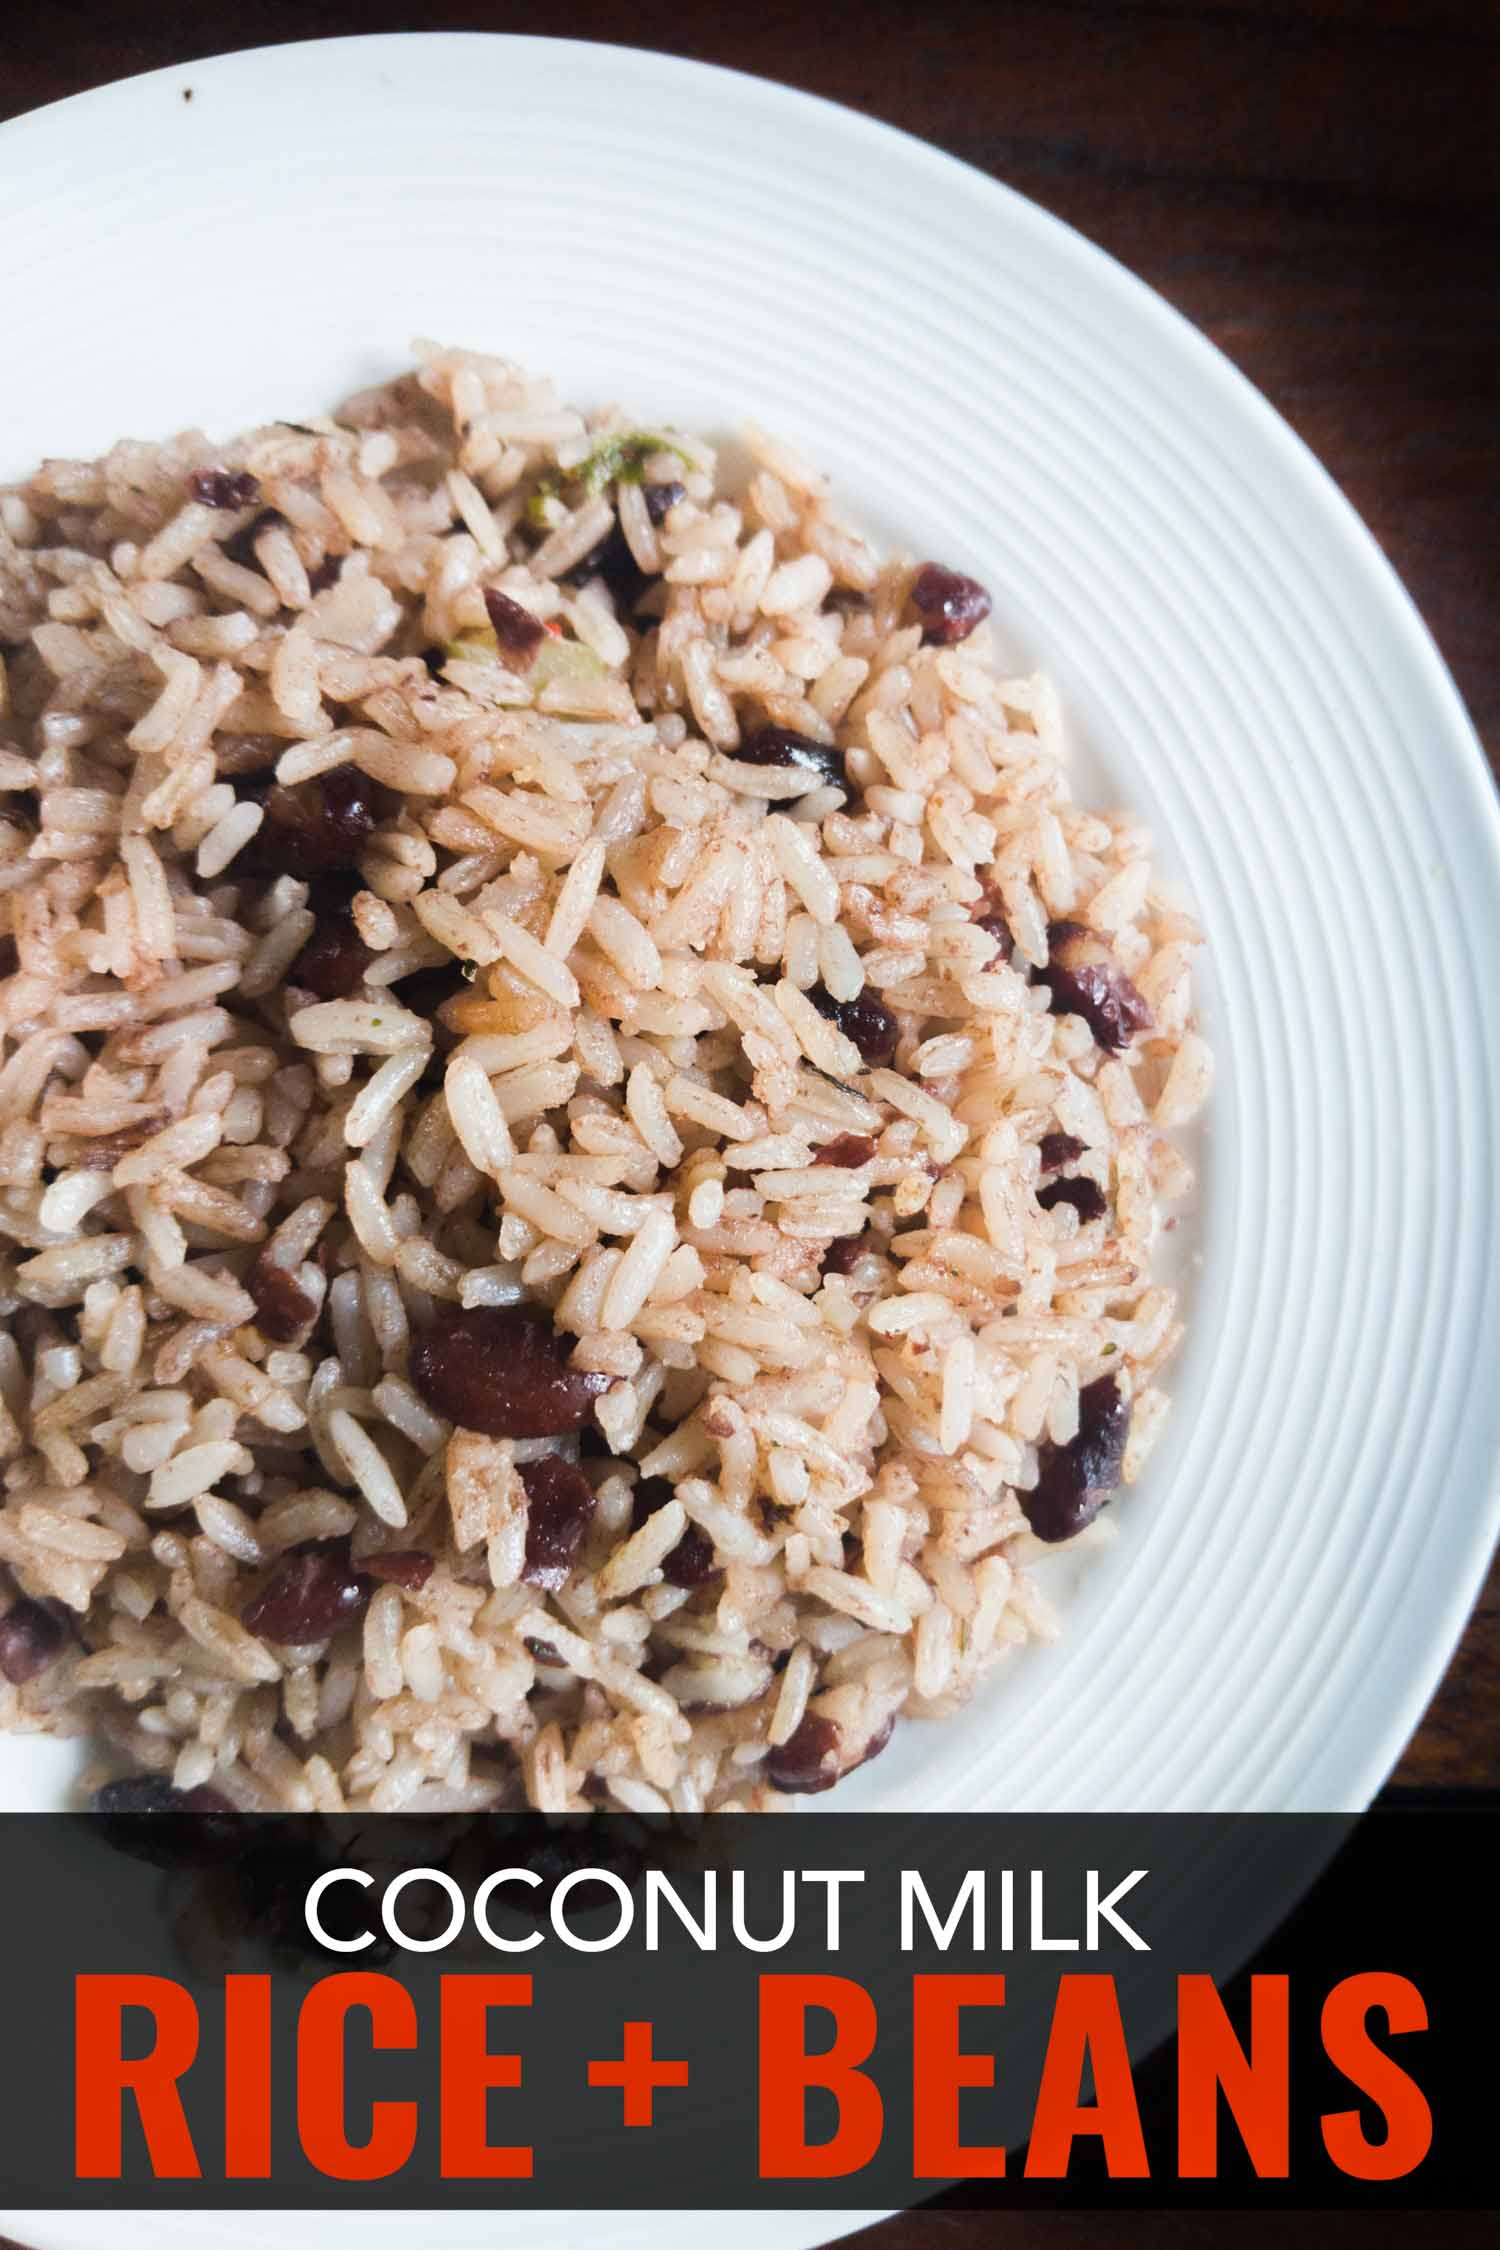 Easy Costa Rican beans and rice recipe with coconut milk from southern Costa Rica. #Vegan #vegetarian